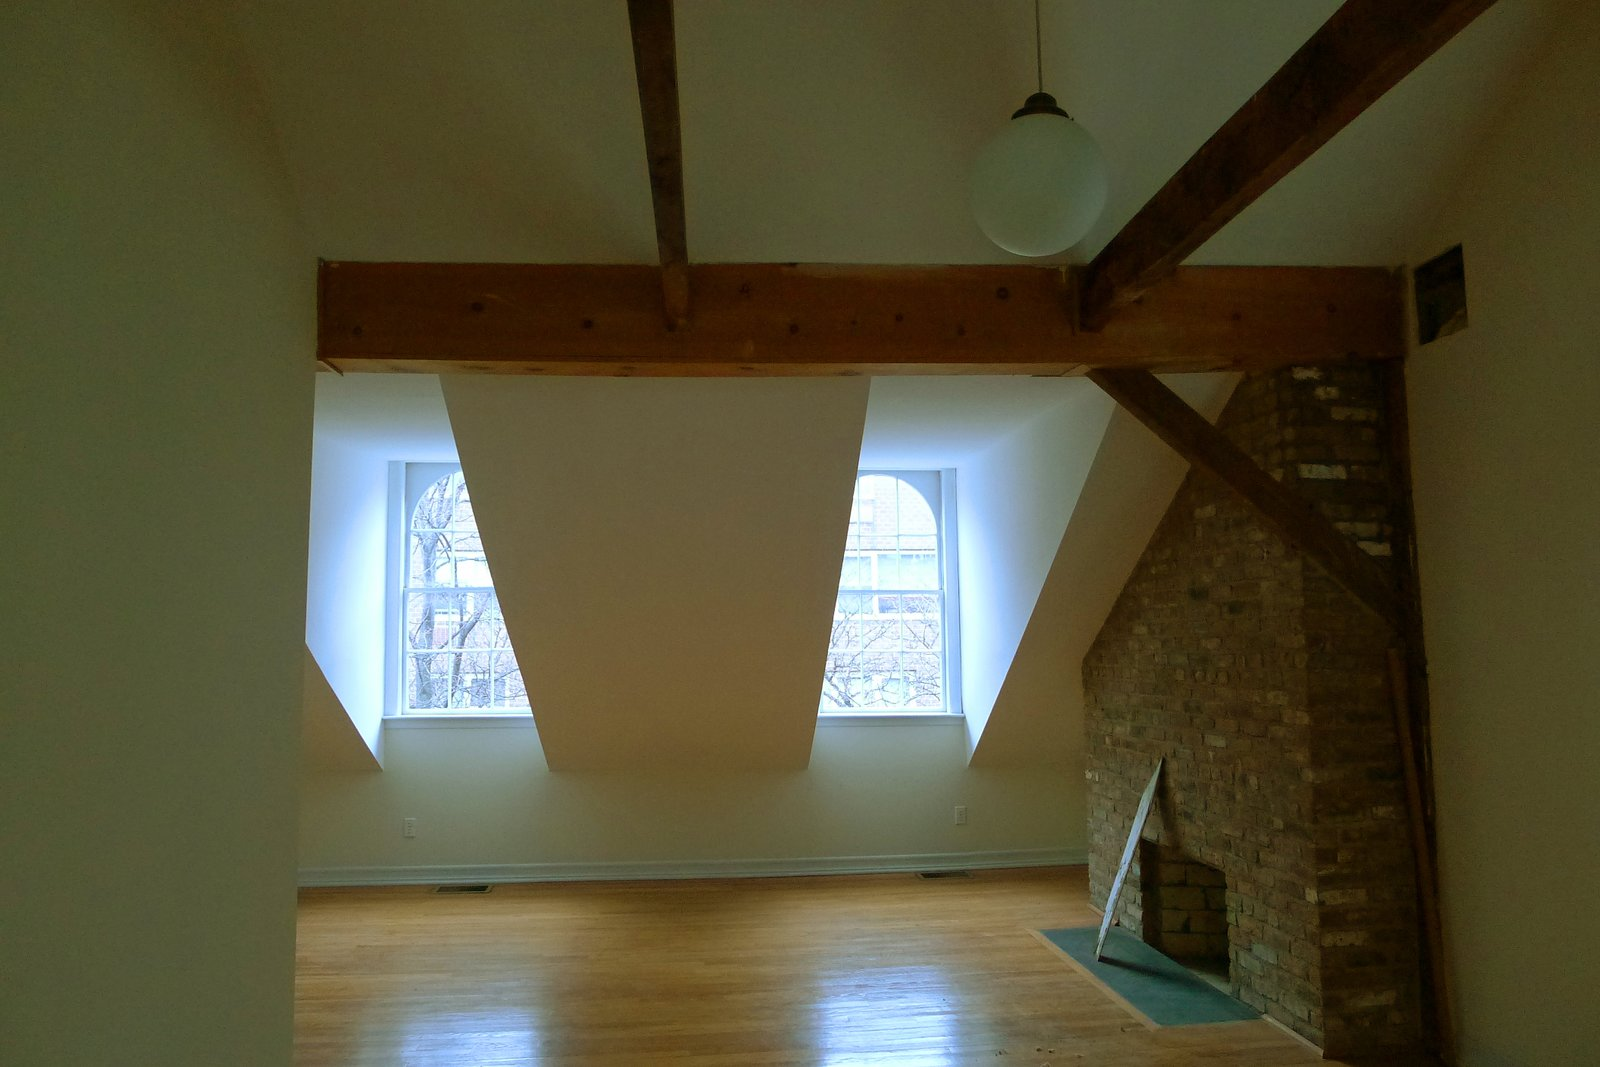 The top floor before the renovation felt cramped, and held another defunct fireplace in need of restoration.